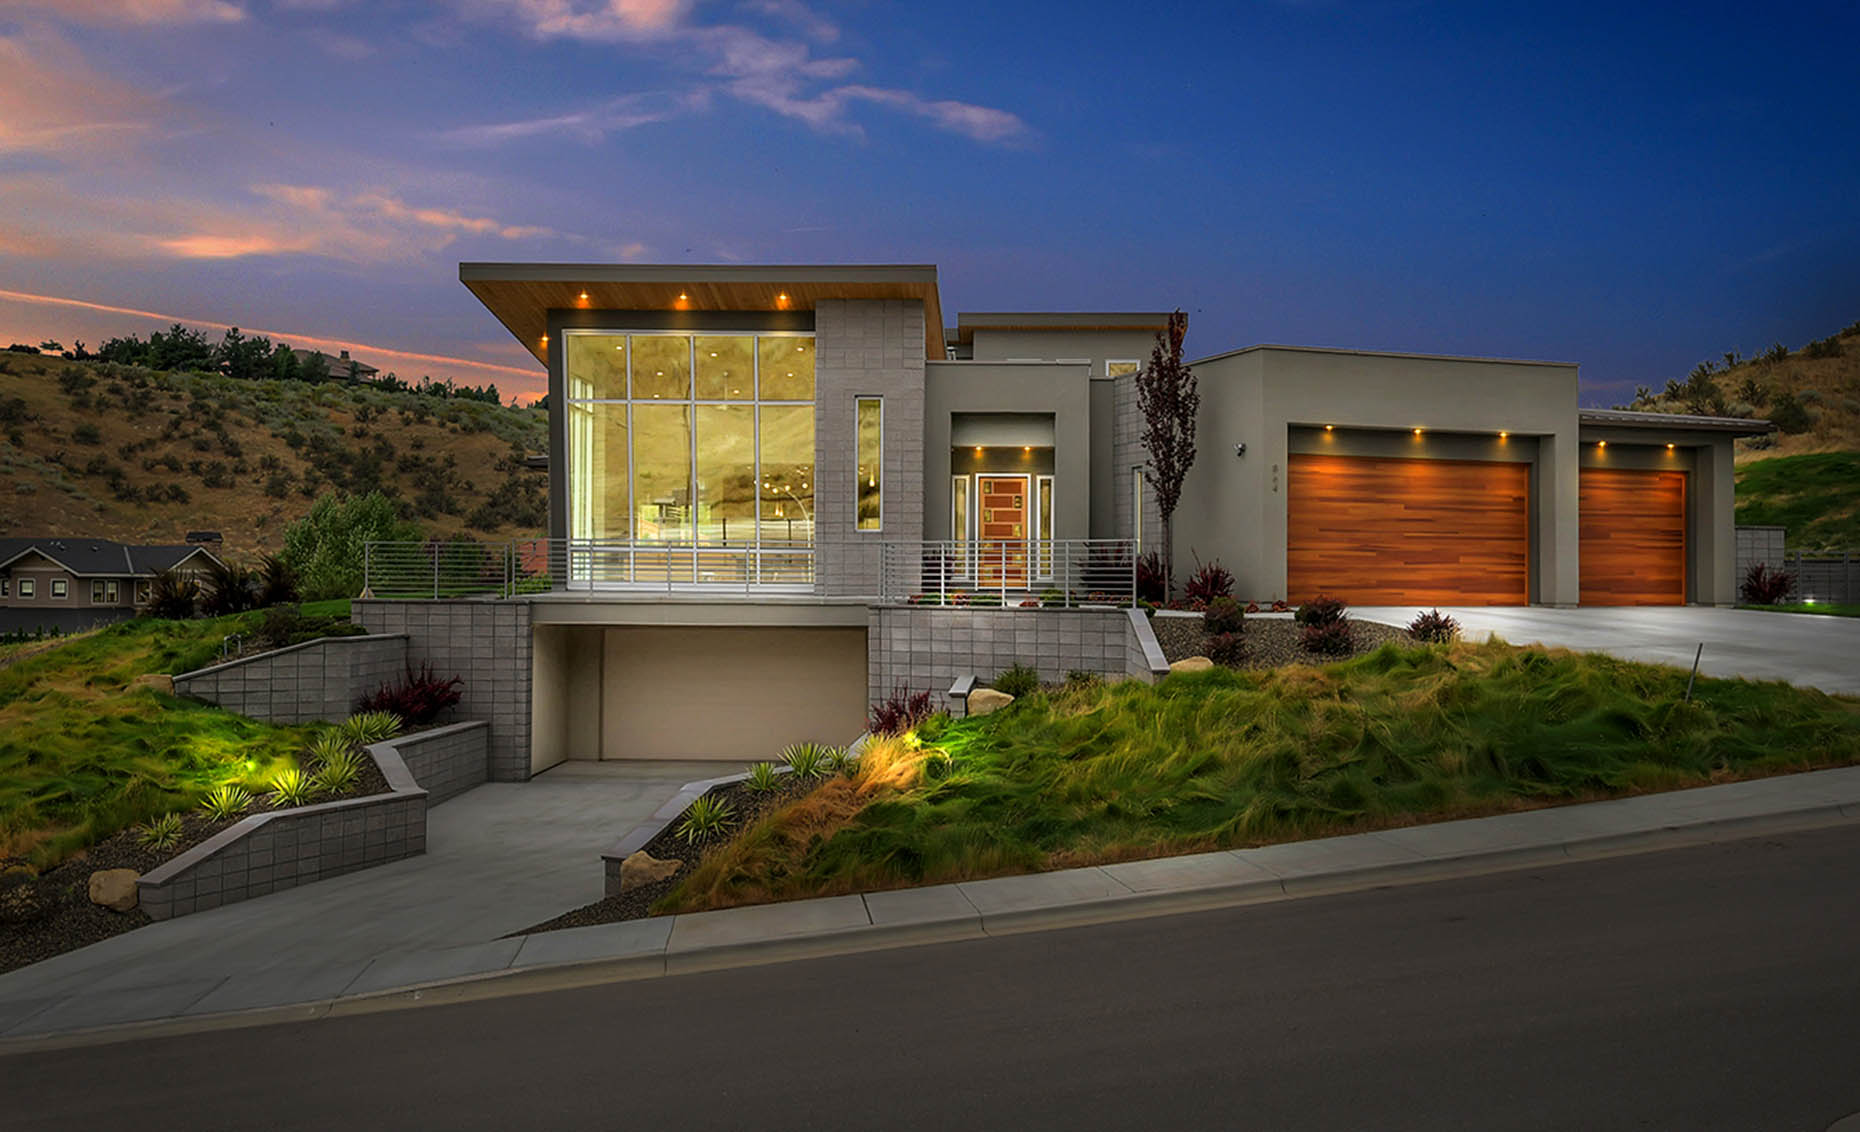 The Nature View Custom Home at Sunset